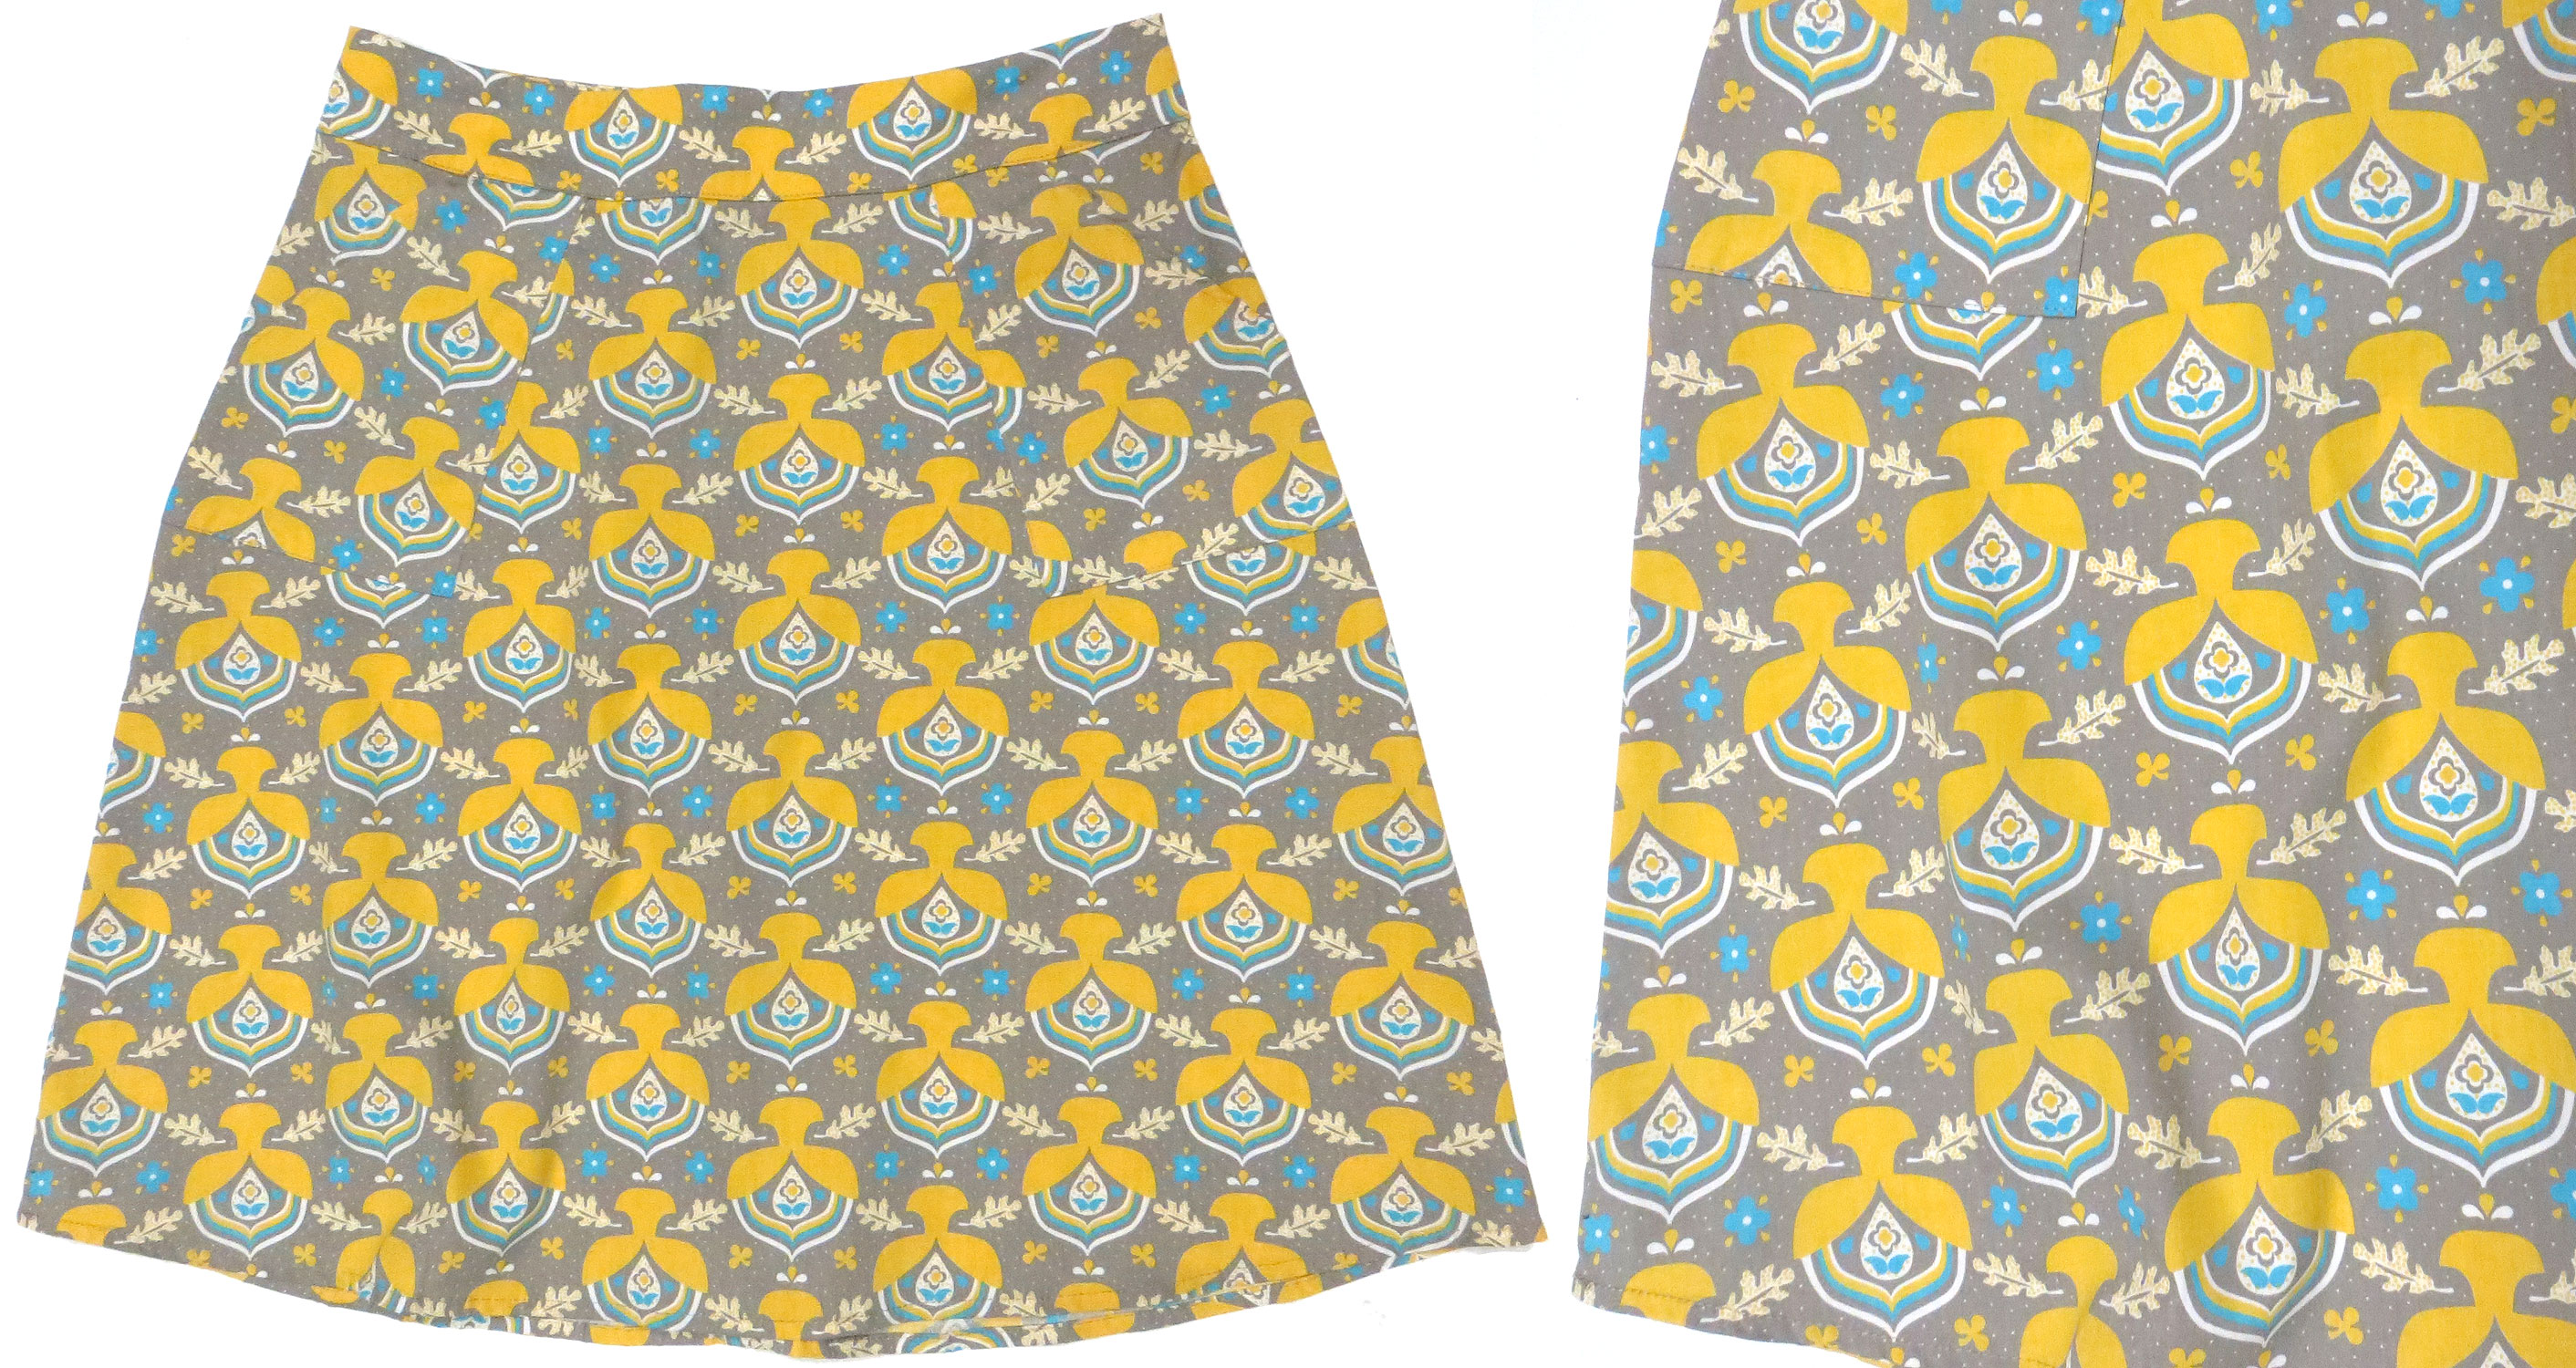 Gold & Gray Illustrated Skirt